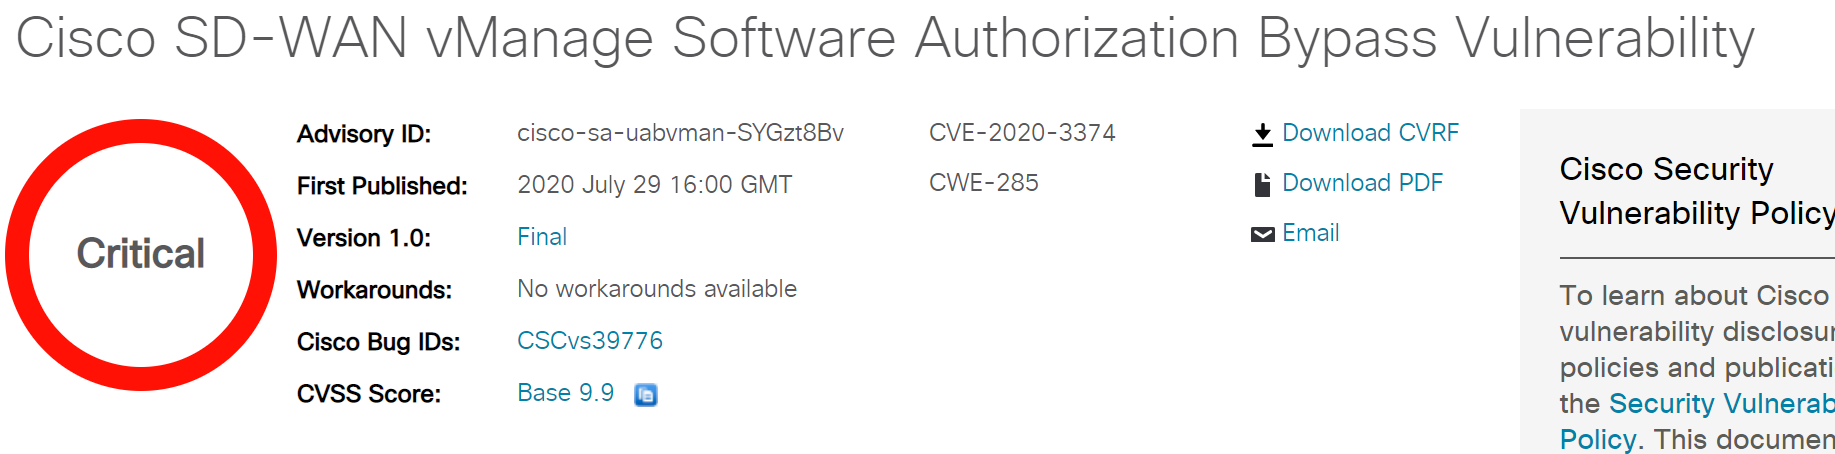 CVE-2020-3374, CVE-2020-3375: CISCO SD-WAN High-Risk Vulnerabilities Alert